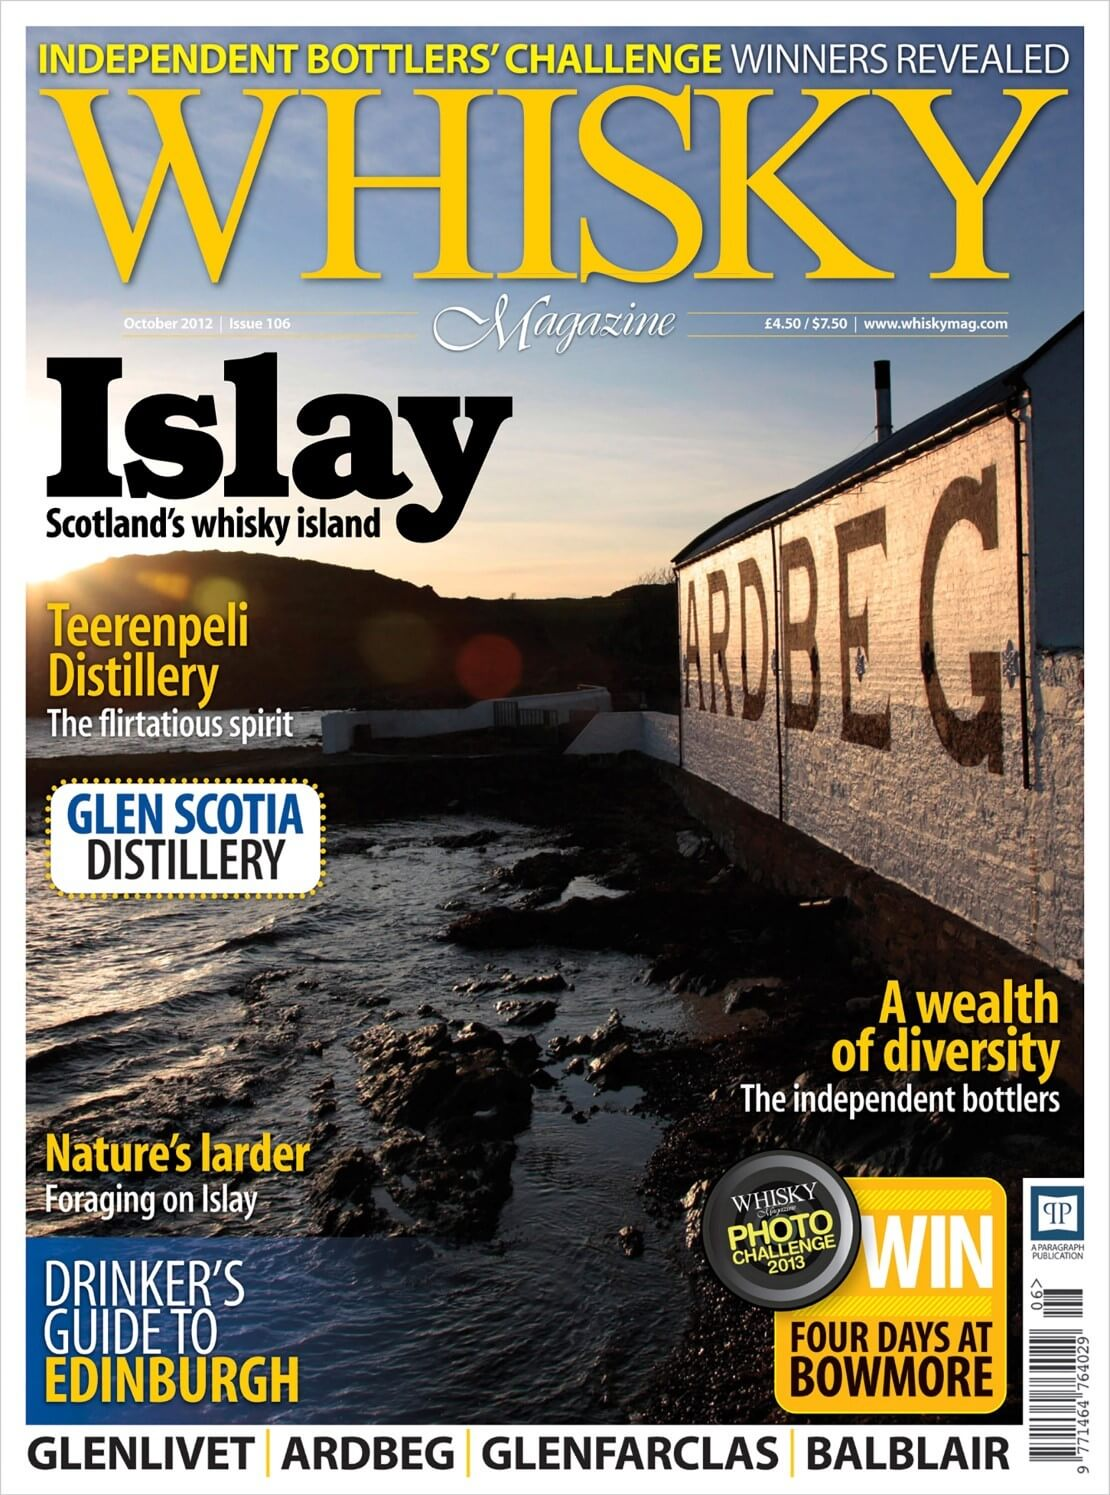 Independent Bottlers Challenge 2012 Islay Drinkers Guide Edinburgh